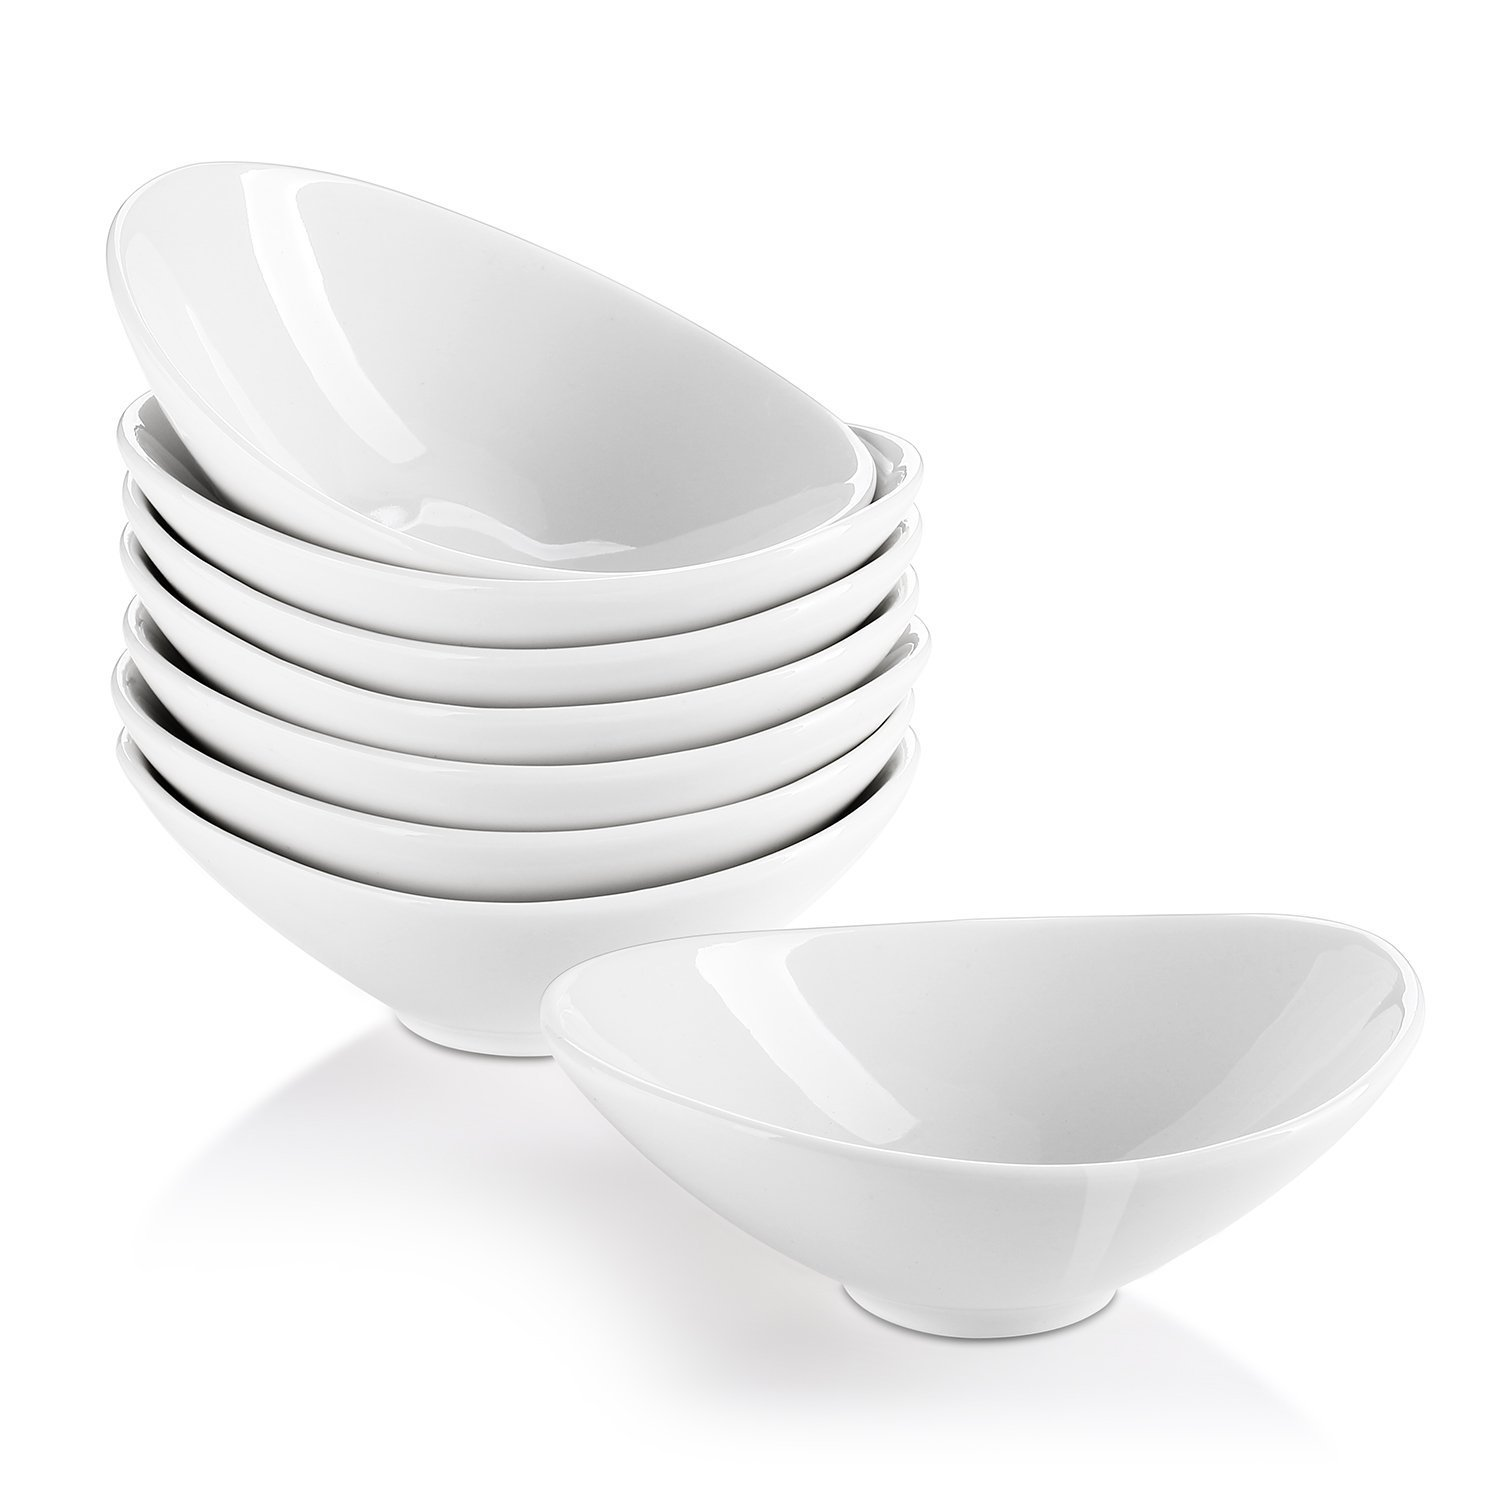 Lifver 8-Pack Bowl Sets/Ramekins, Lovely porcelain Dip Bowls, White